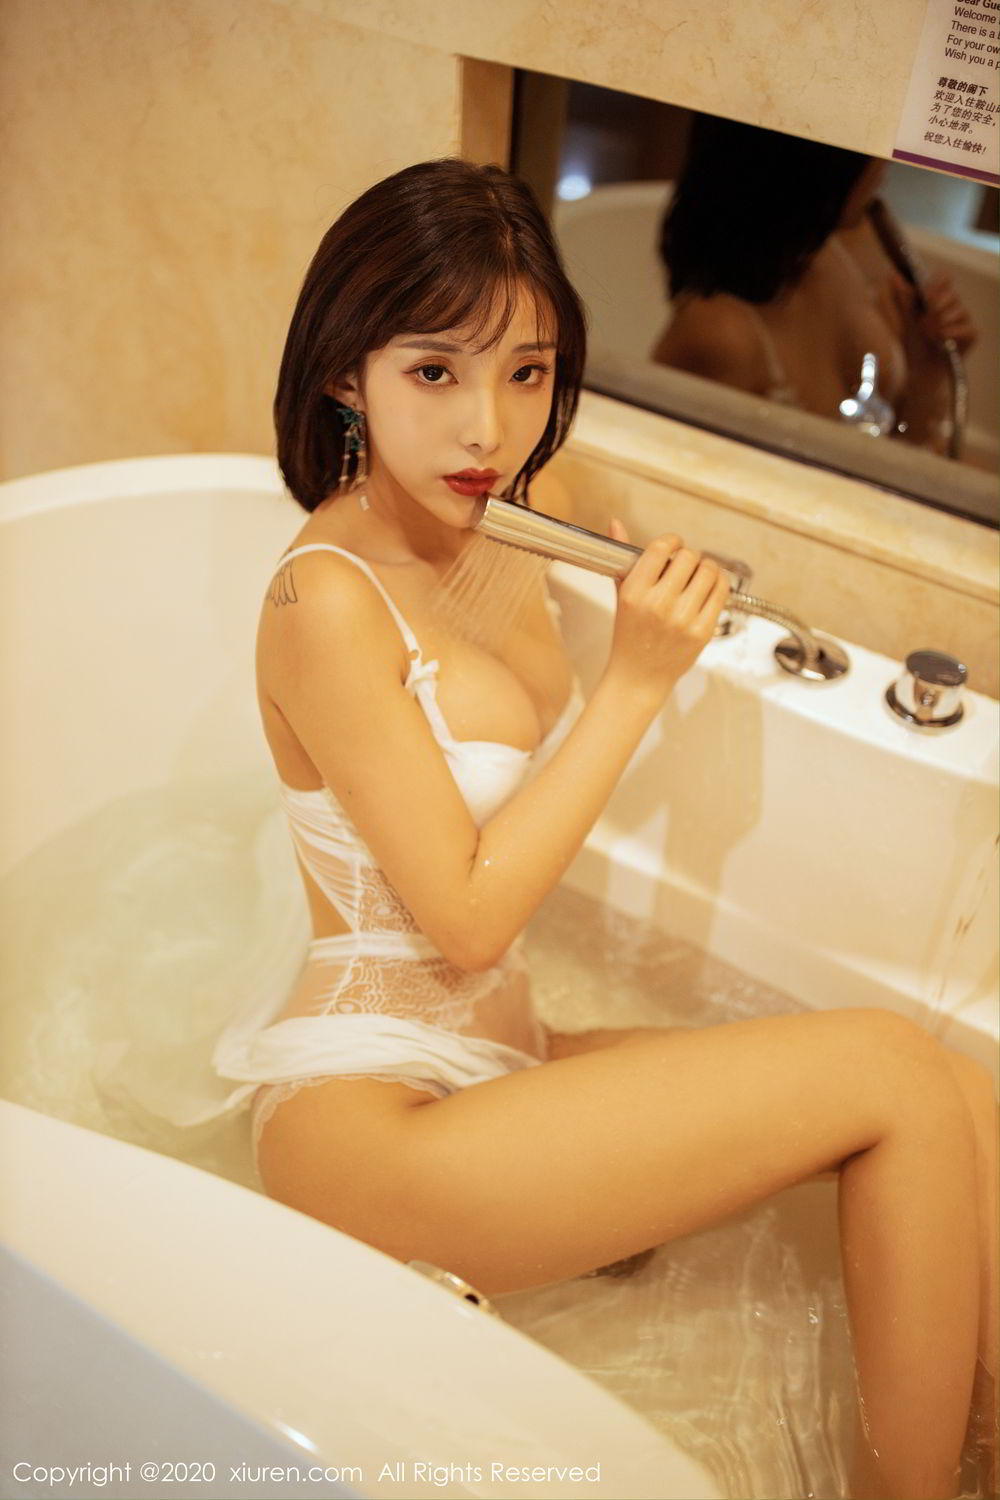 [XiuRen] Vol.2158 Chen Xiao Miao 65P, Bathroom, Chen Xiao Miao, Tall, Wet, Xiuren